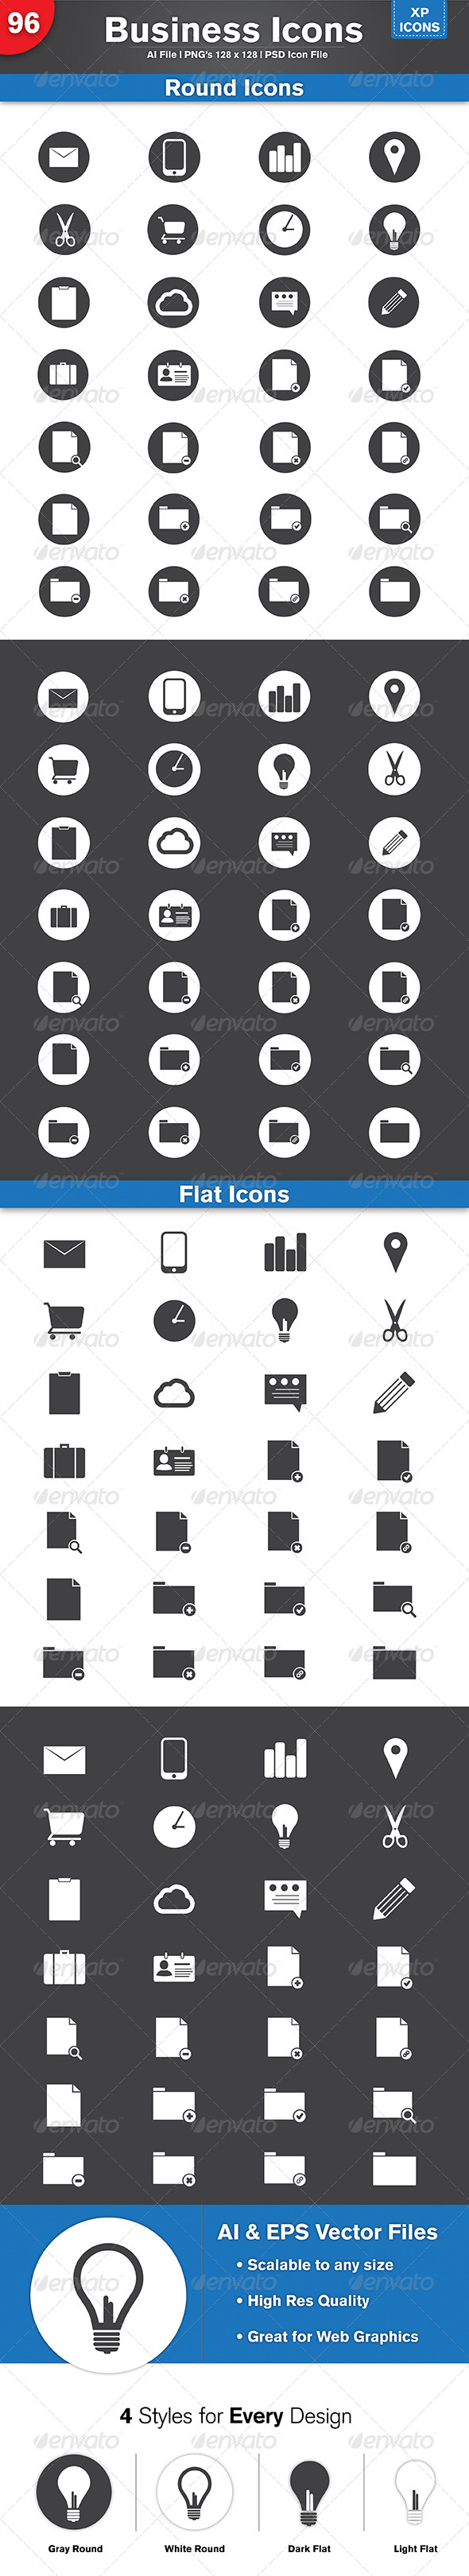 GraphicRiver 96 Flat & Round Business Icons 4894743